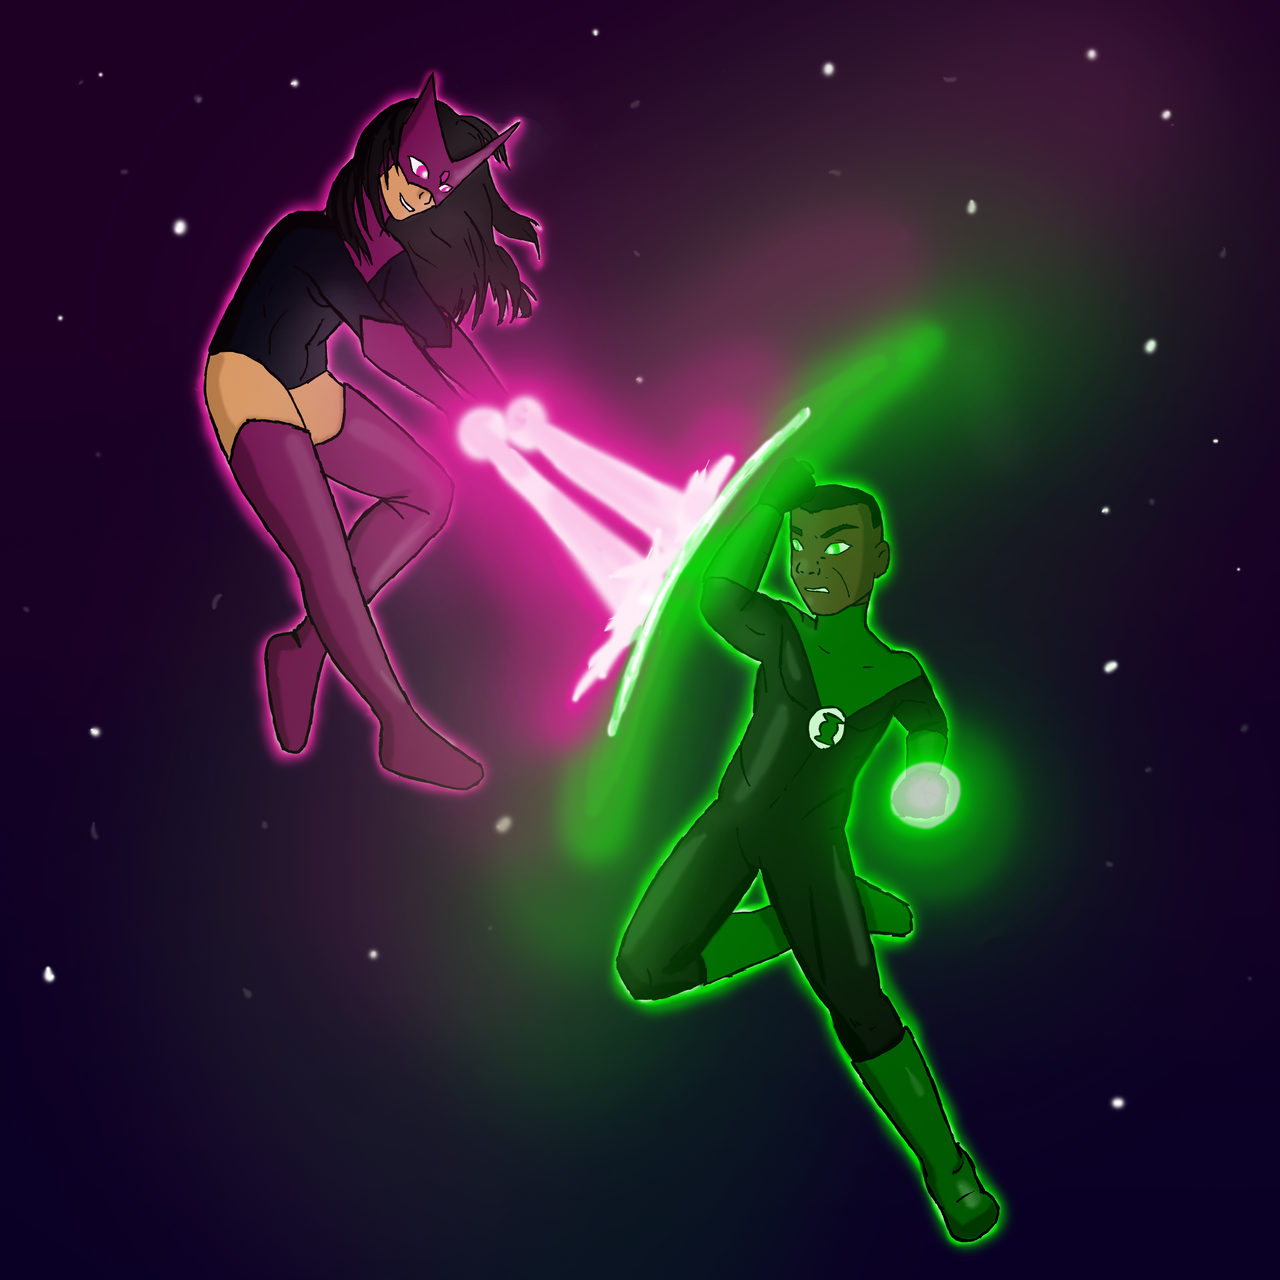 star sapphire and green lantern relationship